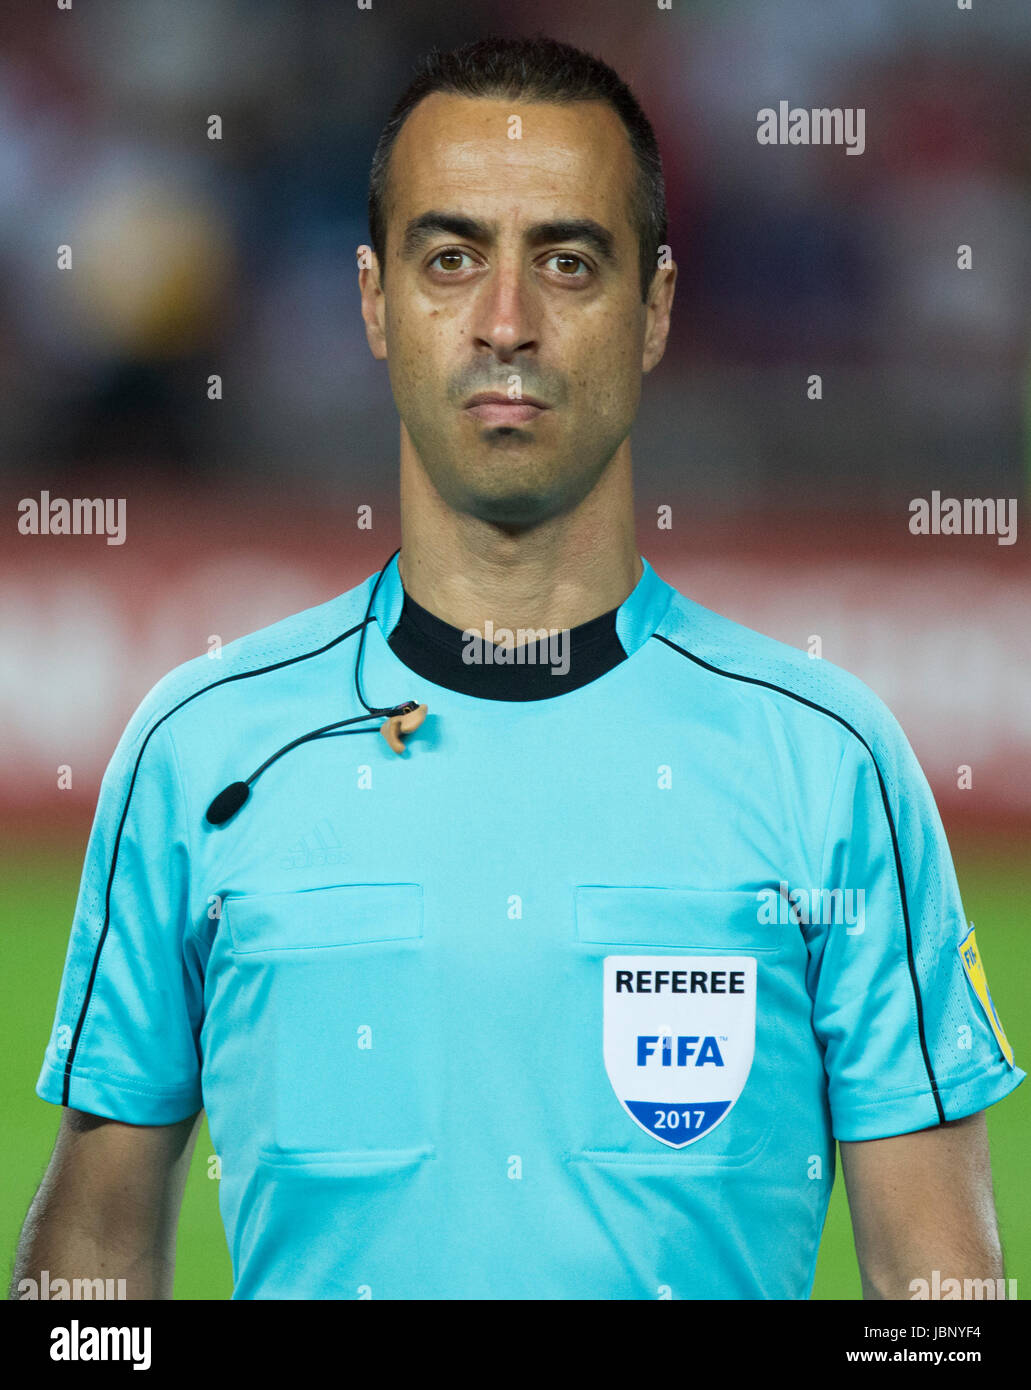 BELGRADE, SERBIA - JUNE 11, 2017: Referee Manuel De Sousa looks on during the national anthem during the 2018 FIFA - Stock Image